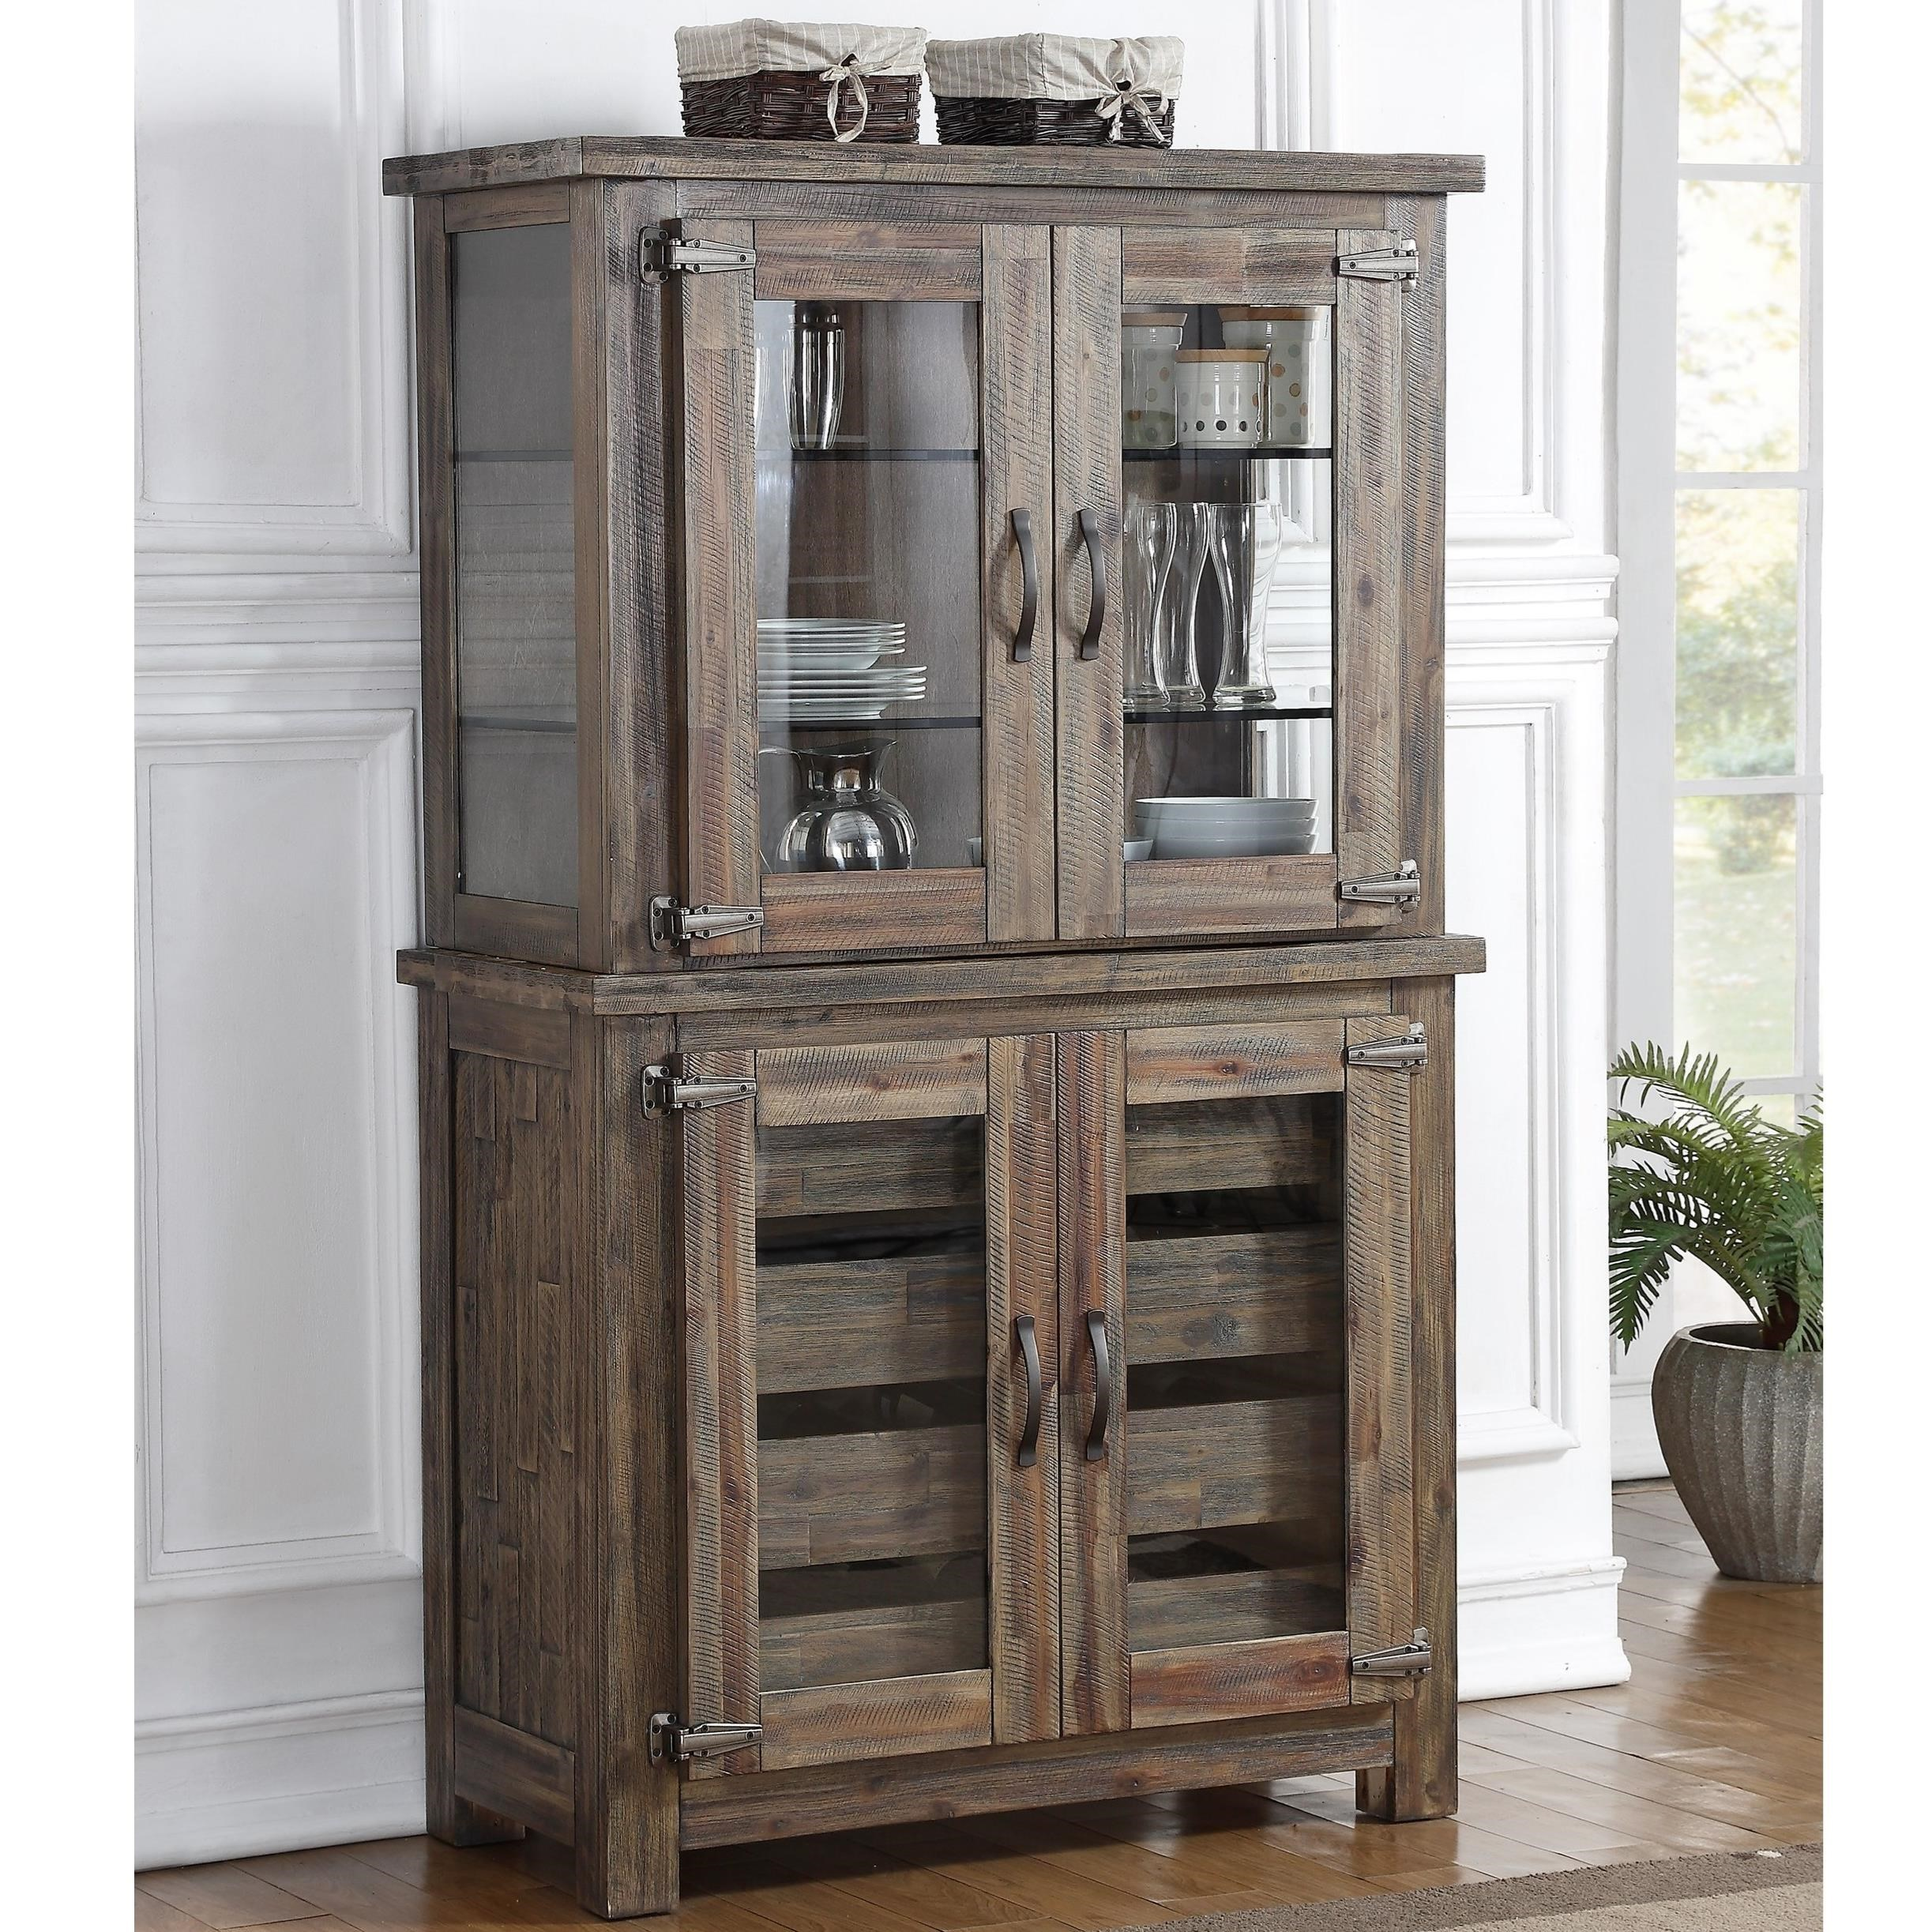 Delicieux Tuscany Park Rustic Curio Cabinet With Built In Display Lights By New  Classic